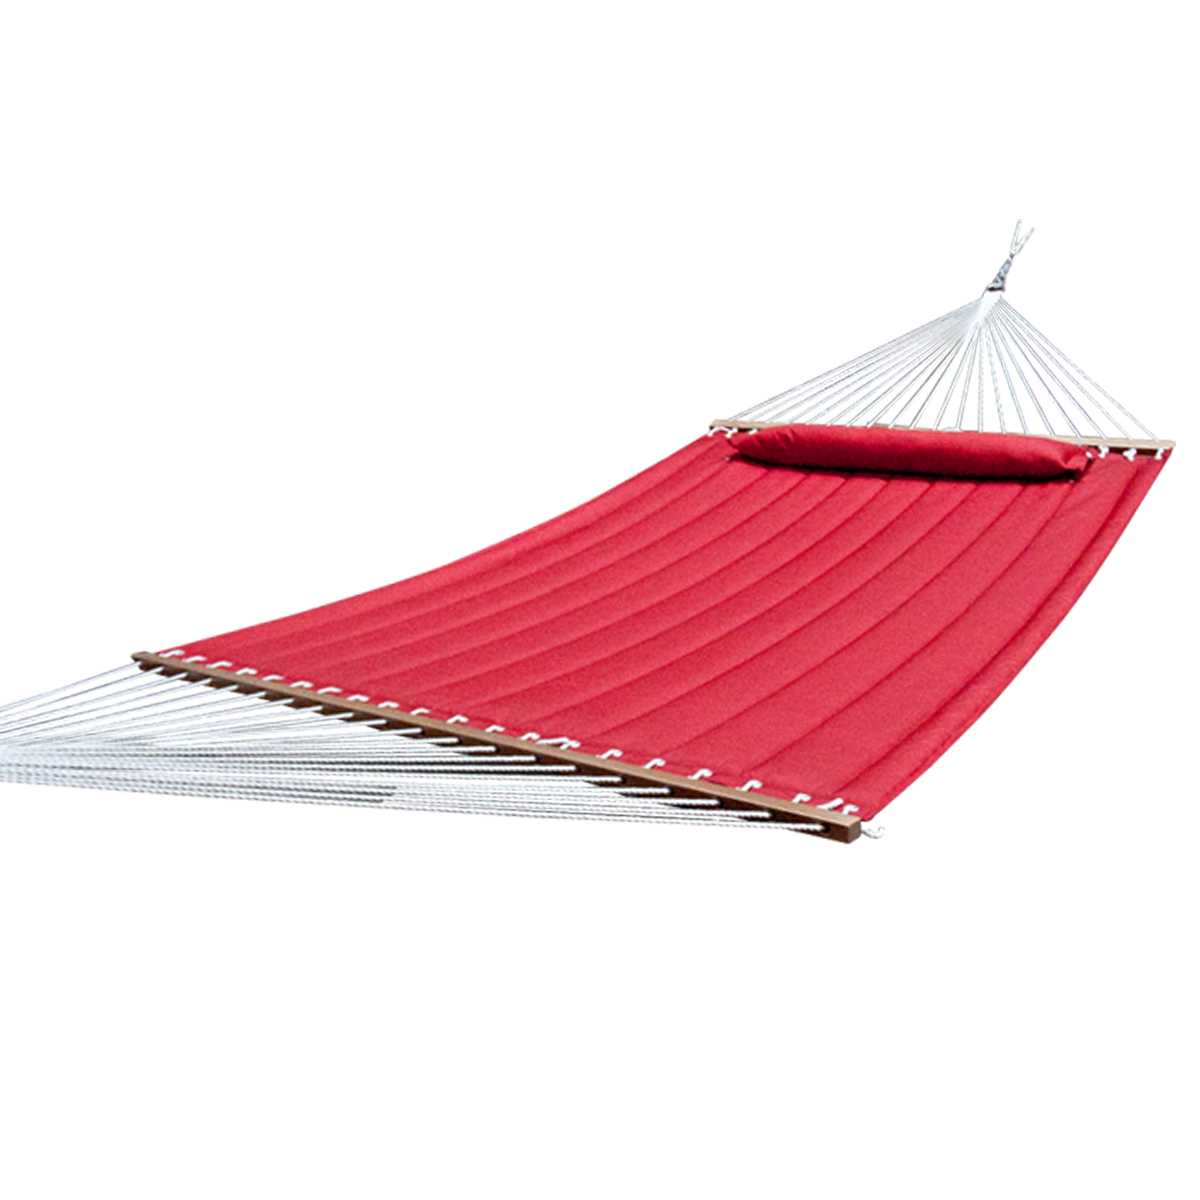 New Quilted Outdoor Hammock Cotton Sleeping Bed Camping